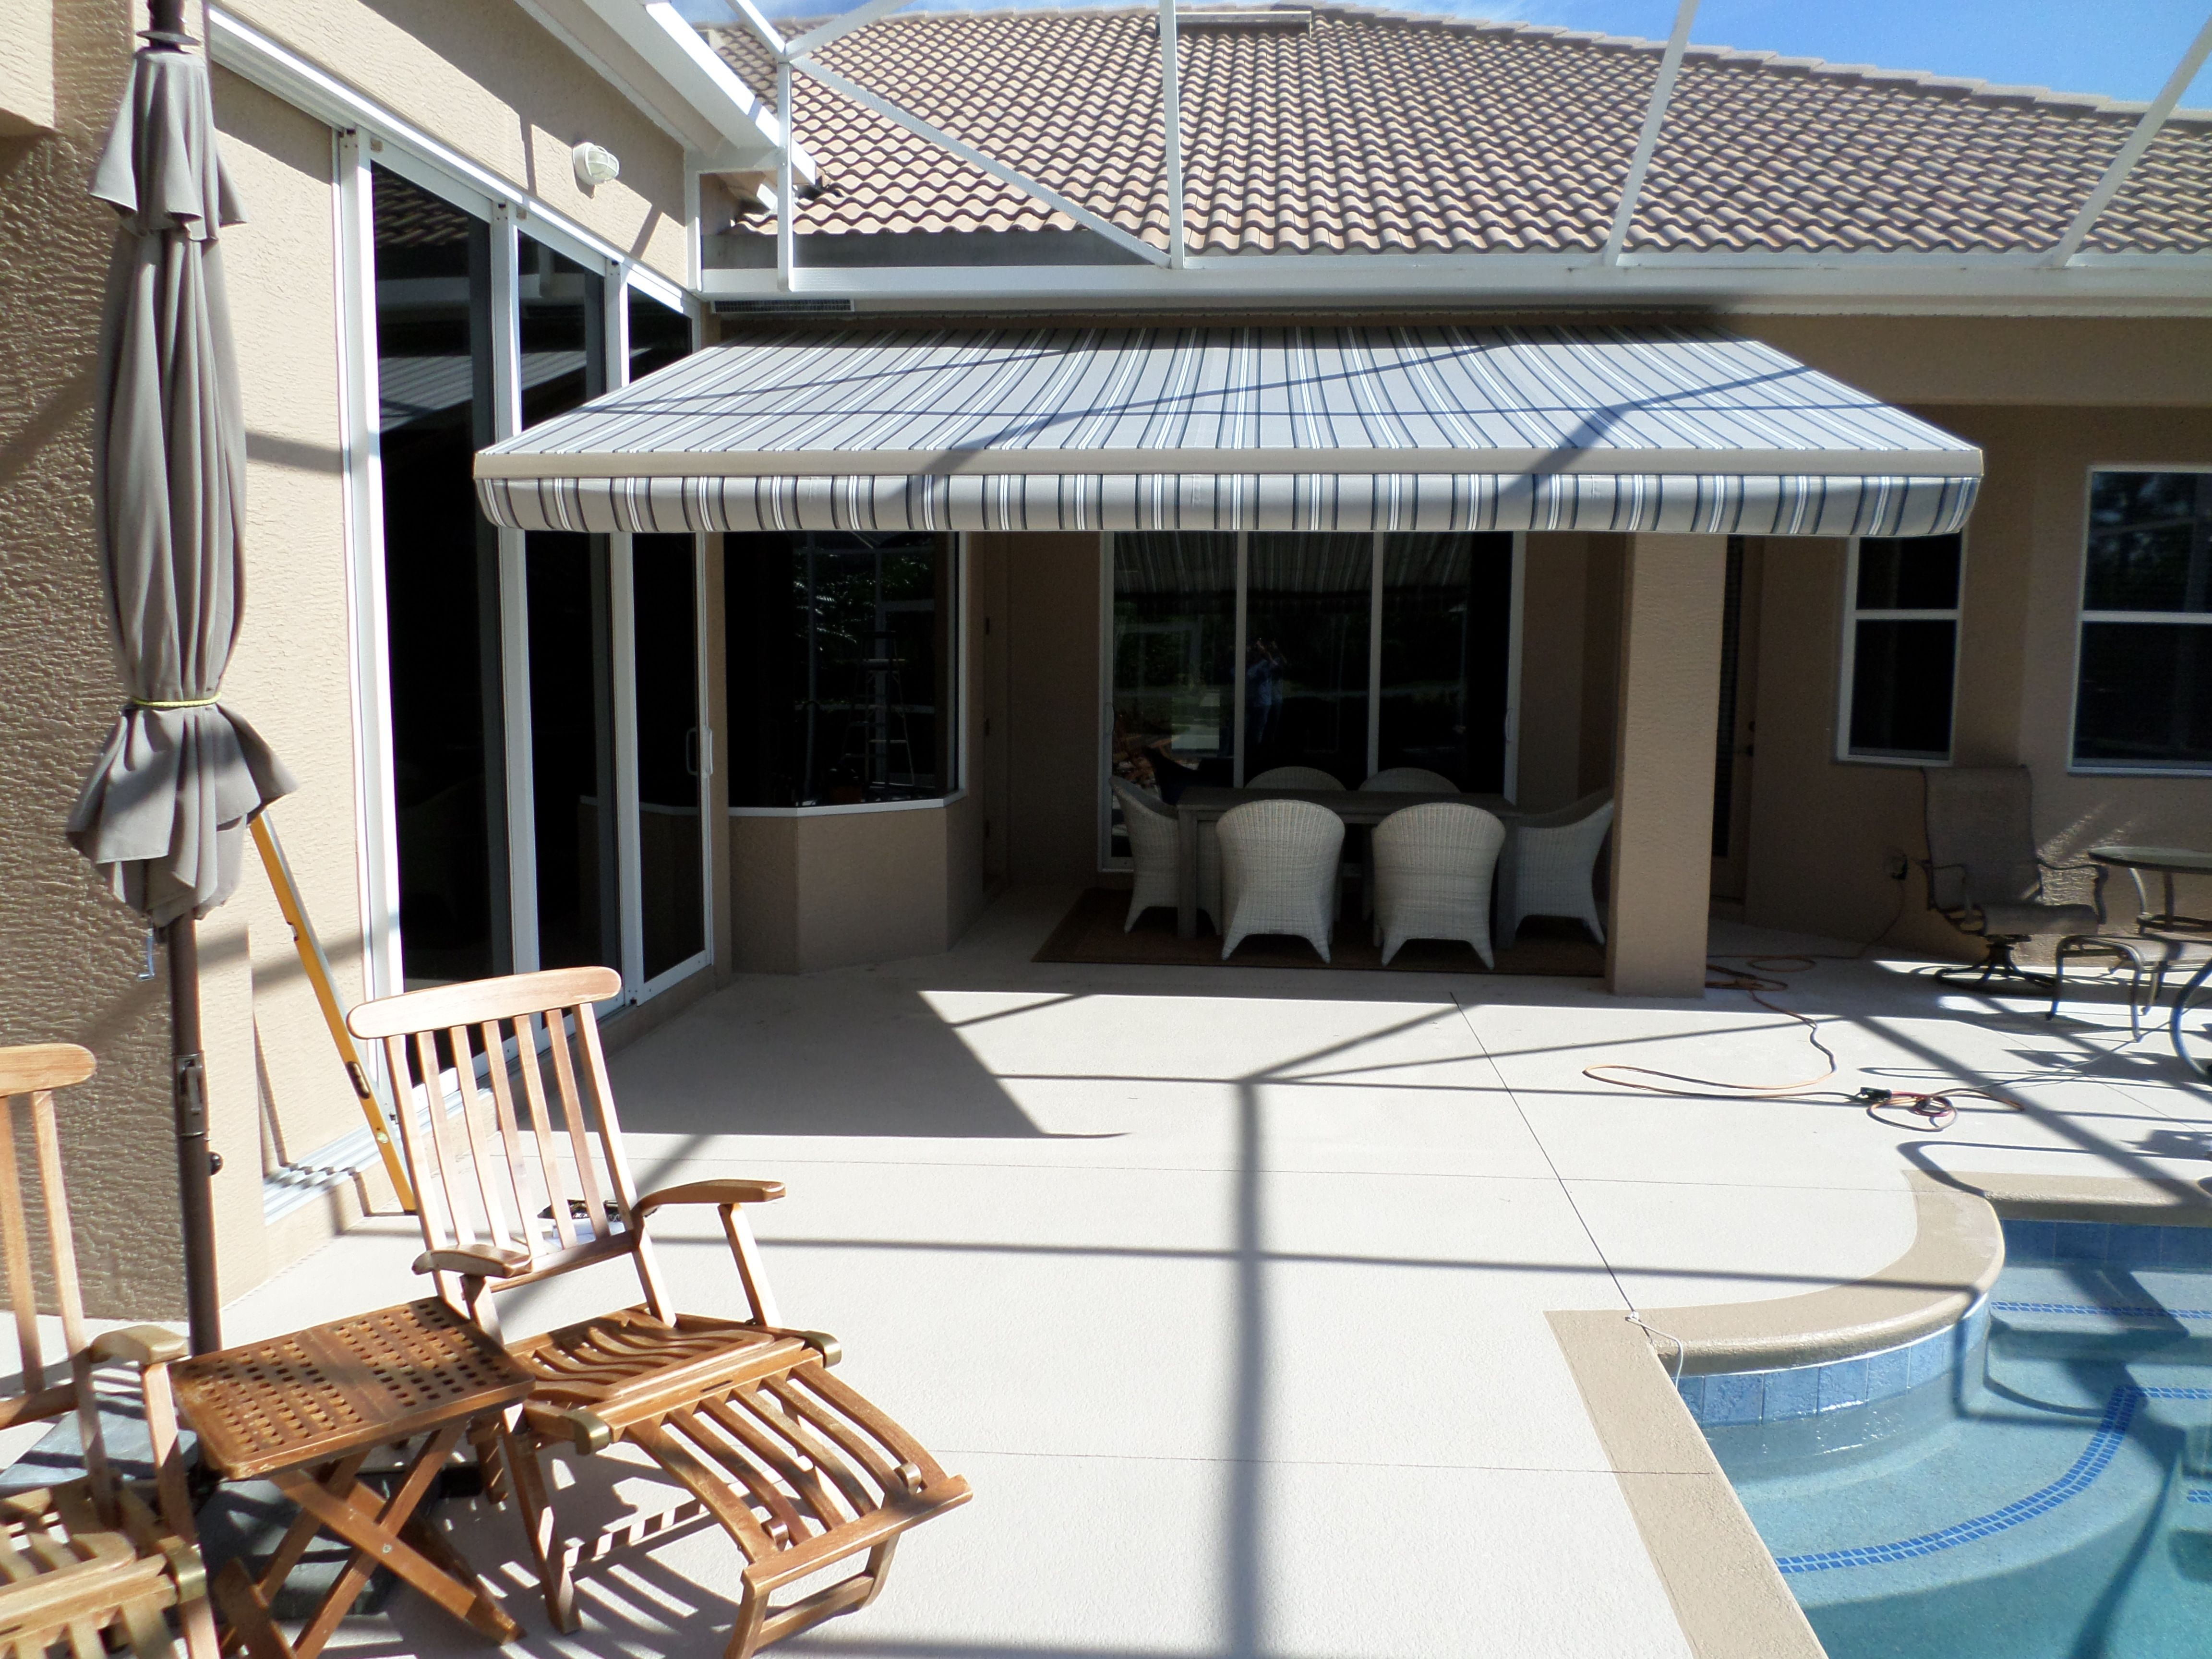 A Shady Spot By The Pool Under A New Awning By Shade And Shield Of Sarasota Fl Awning Retractable Awning Shutters